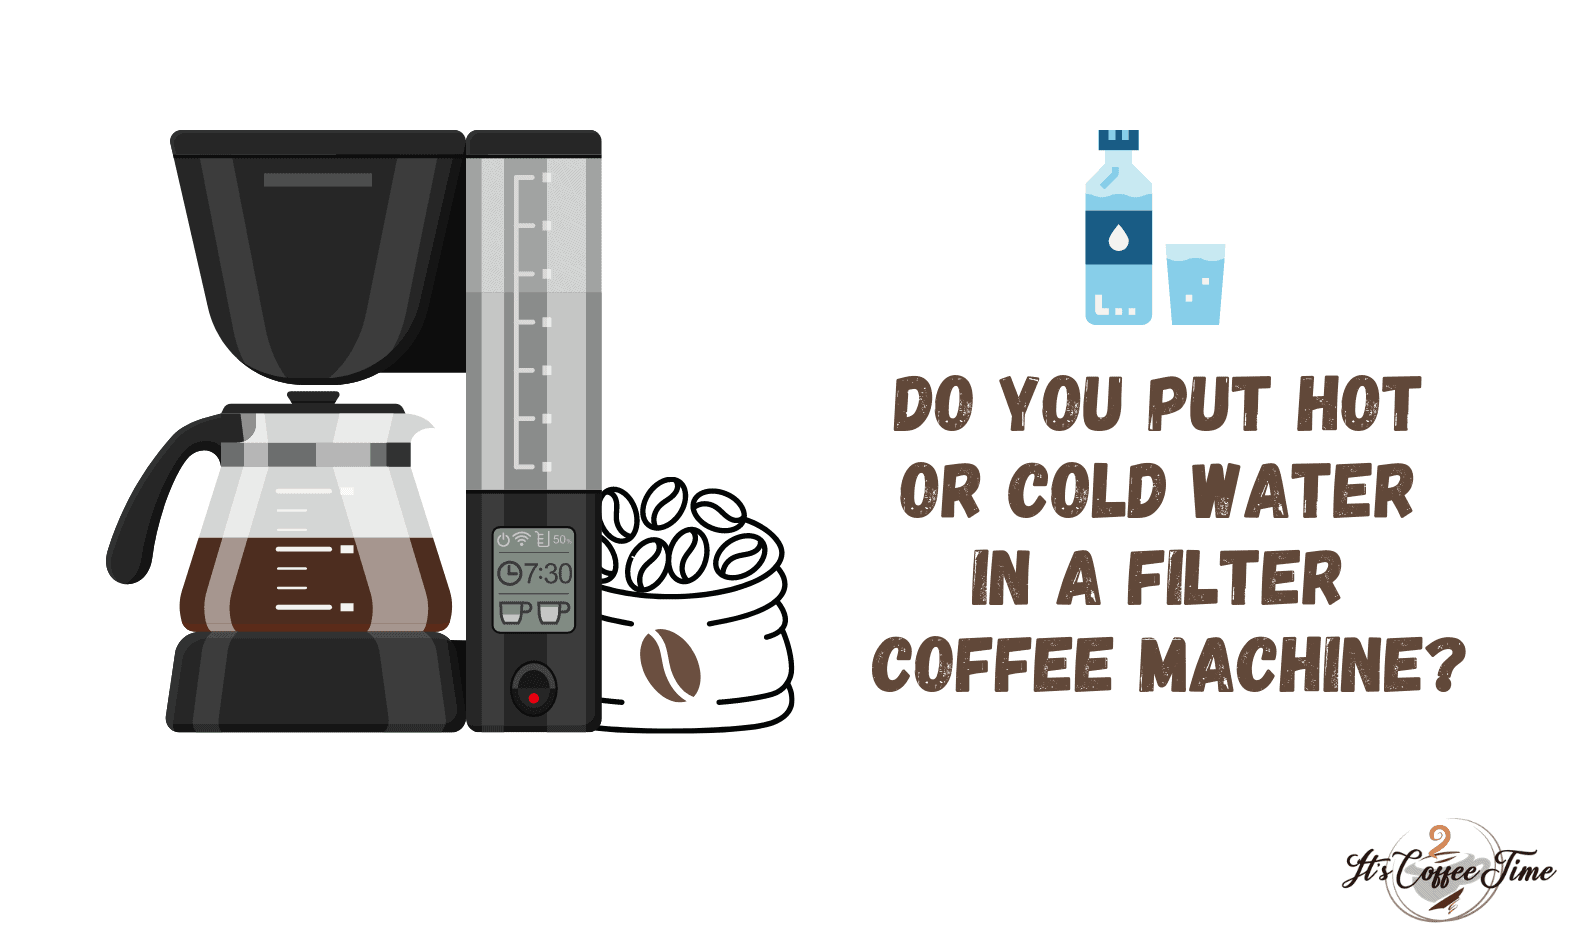 Do you put Hot or Cold Water in a Filter Coffee Machine